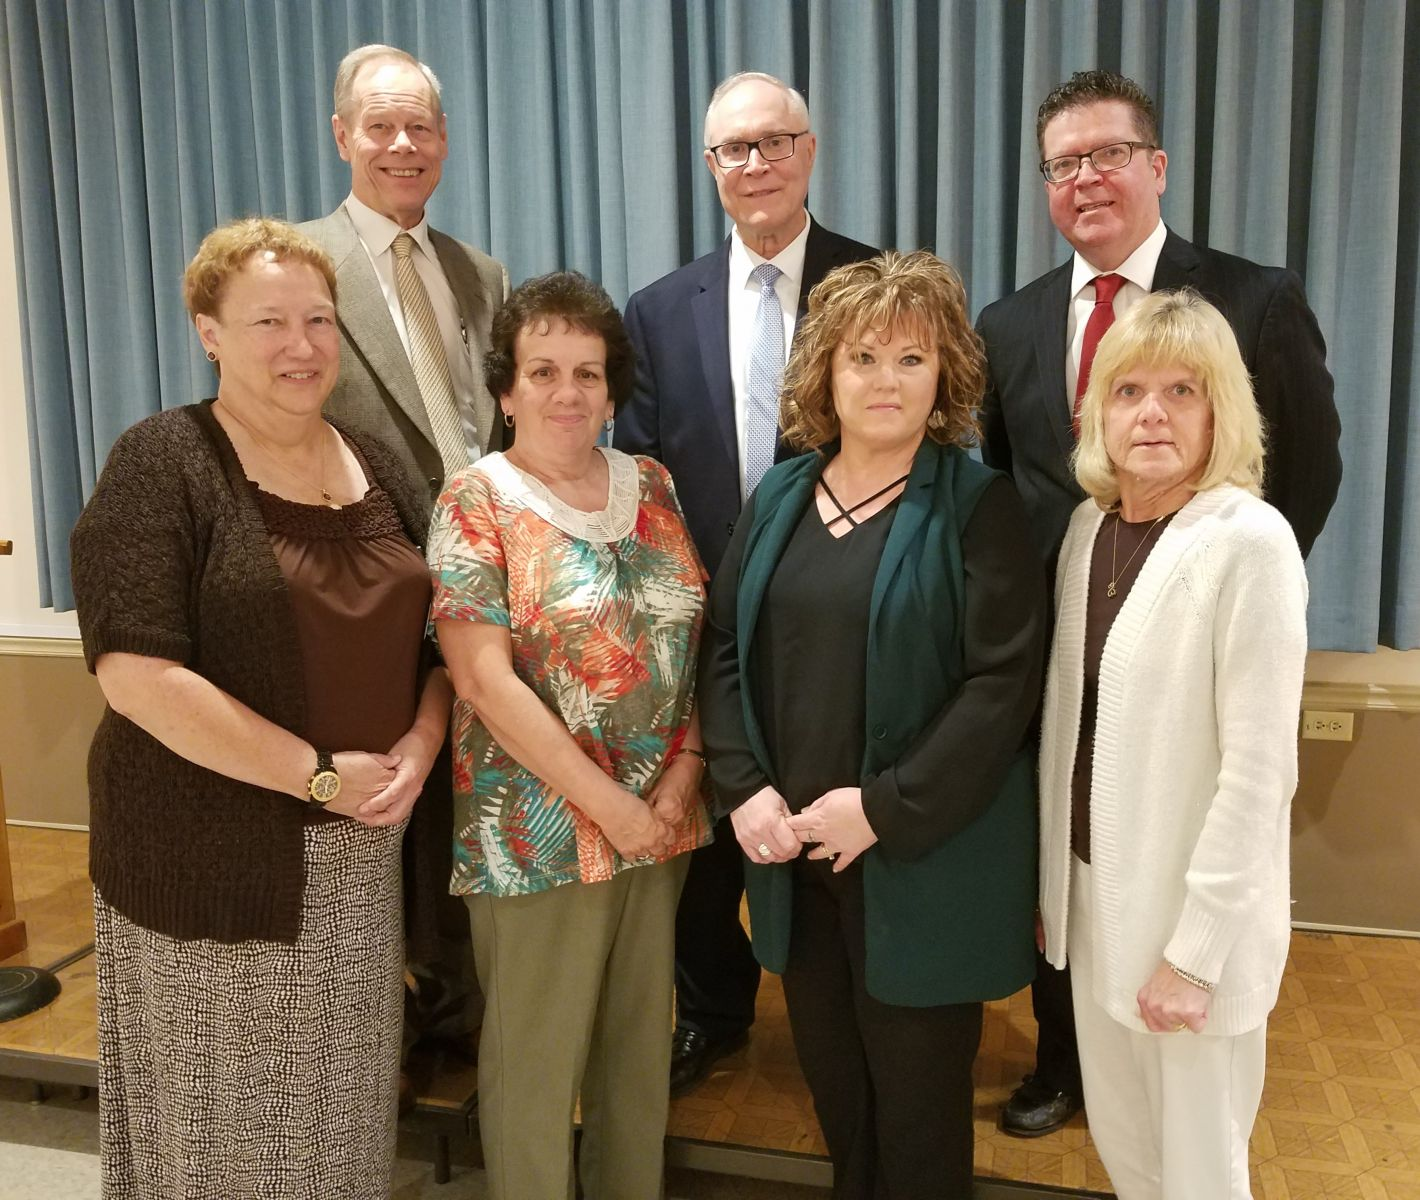 30 Years of Service Pictured above (left to right): top row- Commissioner Bob Ziobrowski, Commissioner Bob Thomas, Commissioner Chairman Dave Keller; bottom row- Mary Beavers, Carla Rock, Bonnie Zeis, Julie Bless Missing from photo: Carol Rockwell